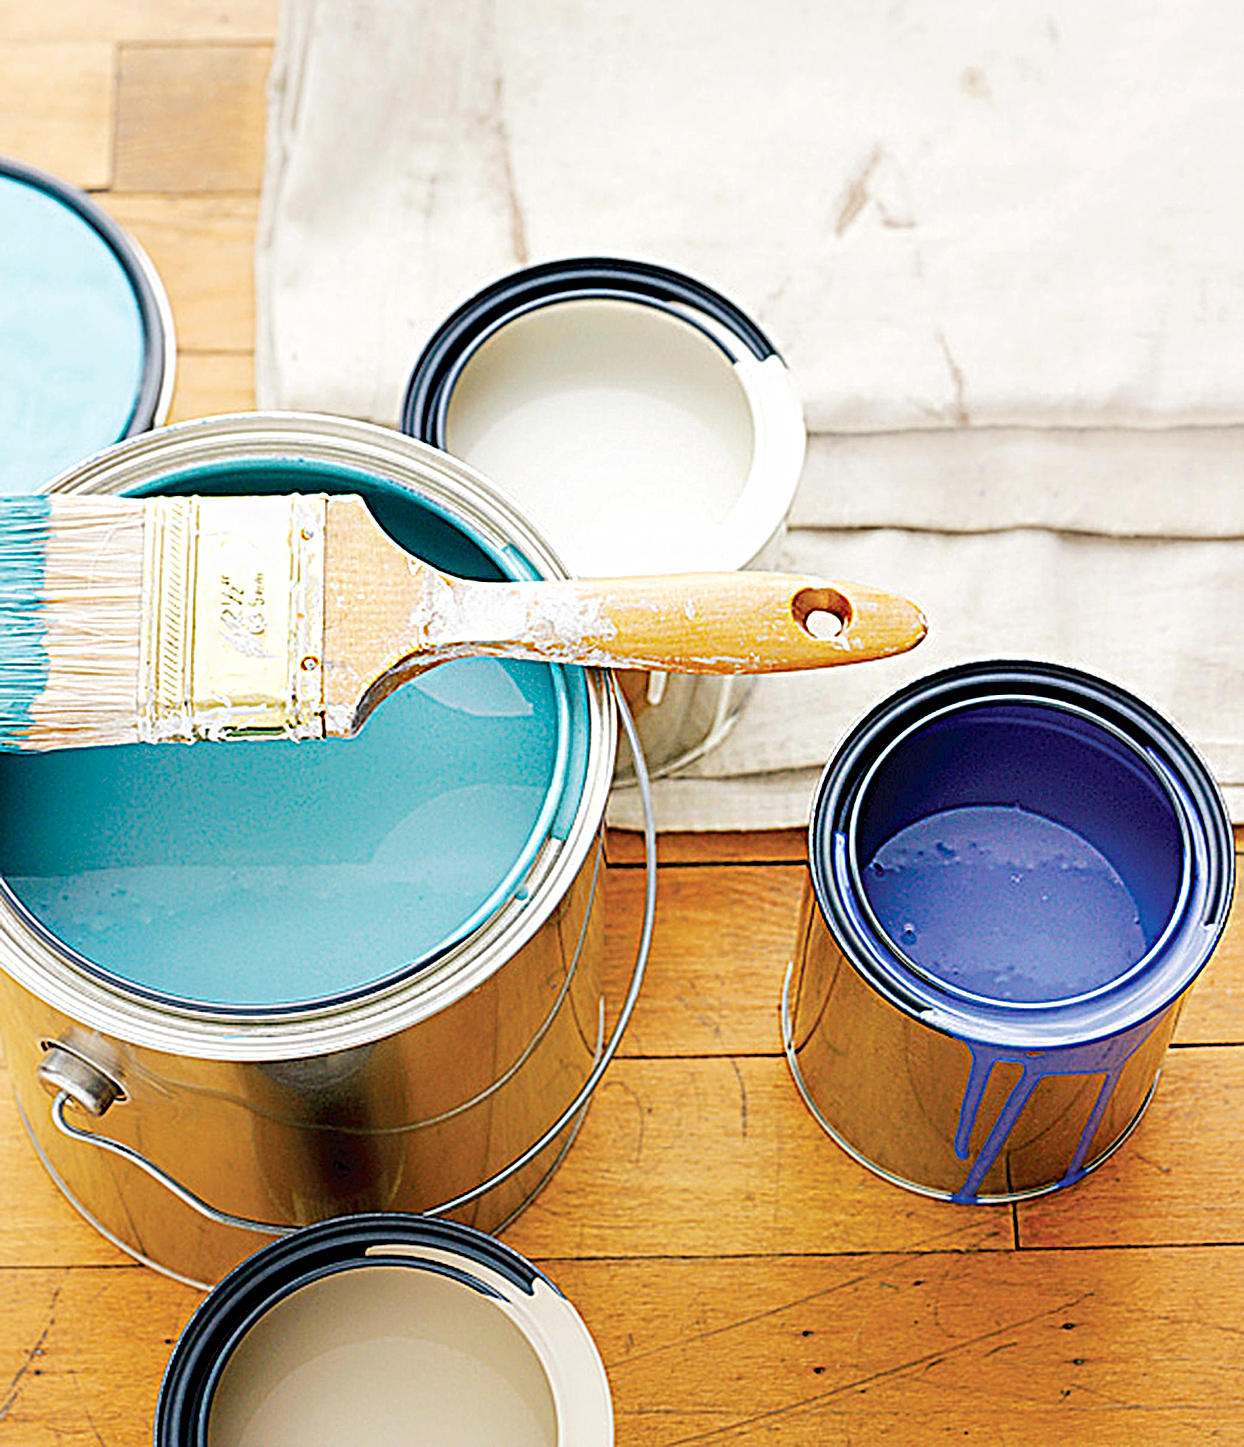 Different cans of paint